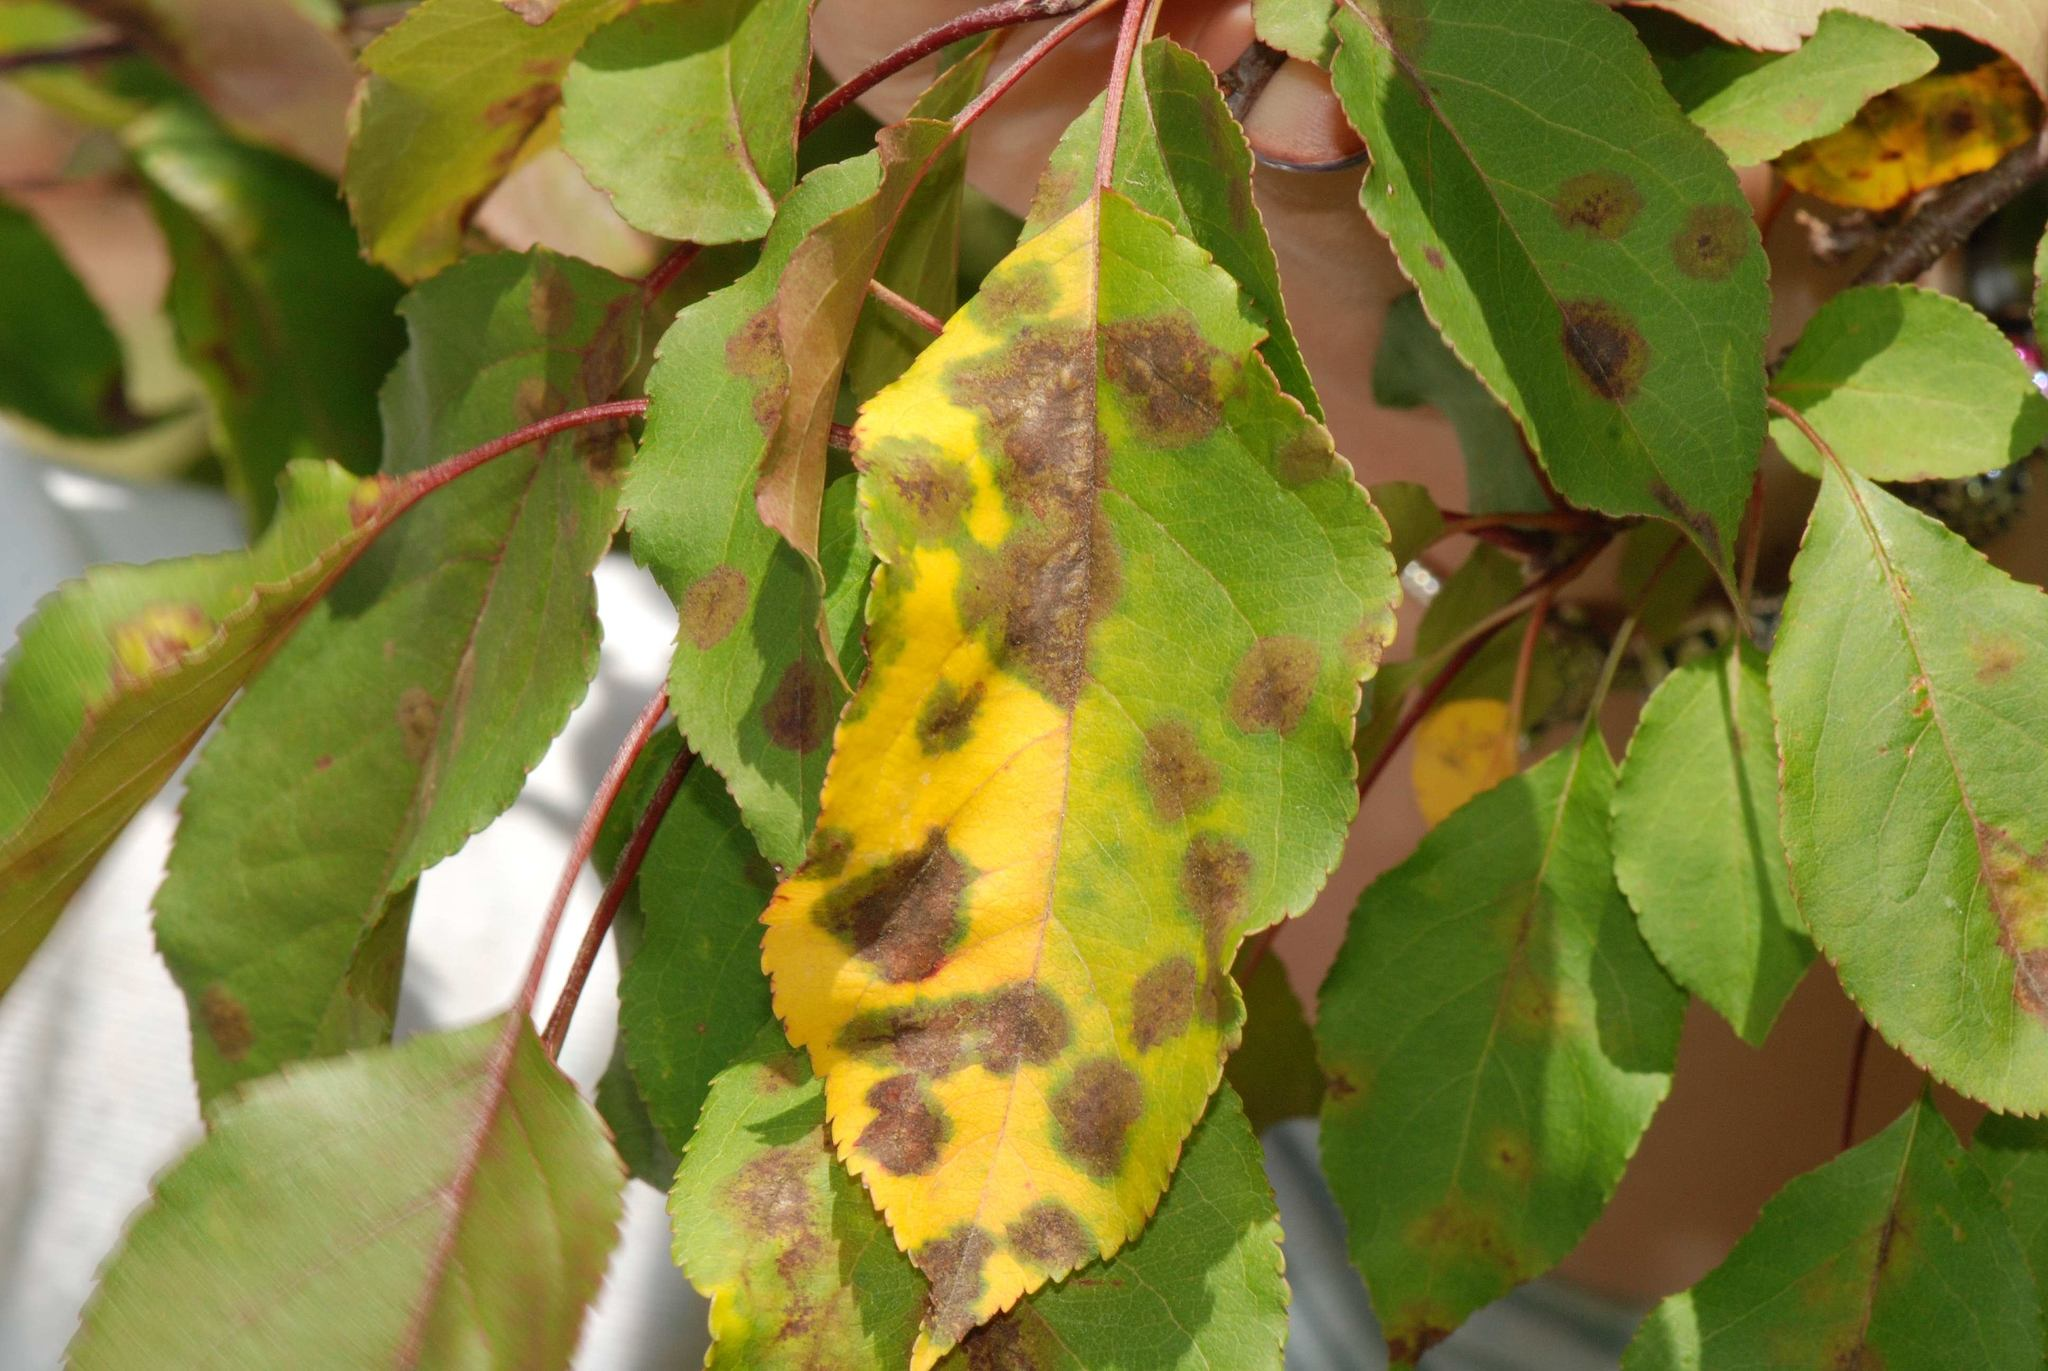 Be on the Lookout for Apple Scab, Mildew and Spruce Needle Cast